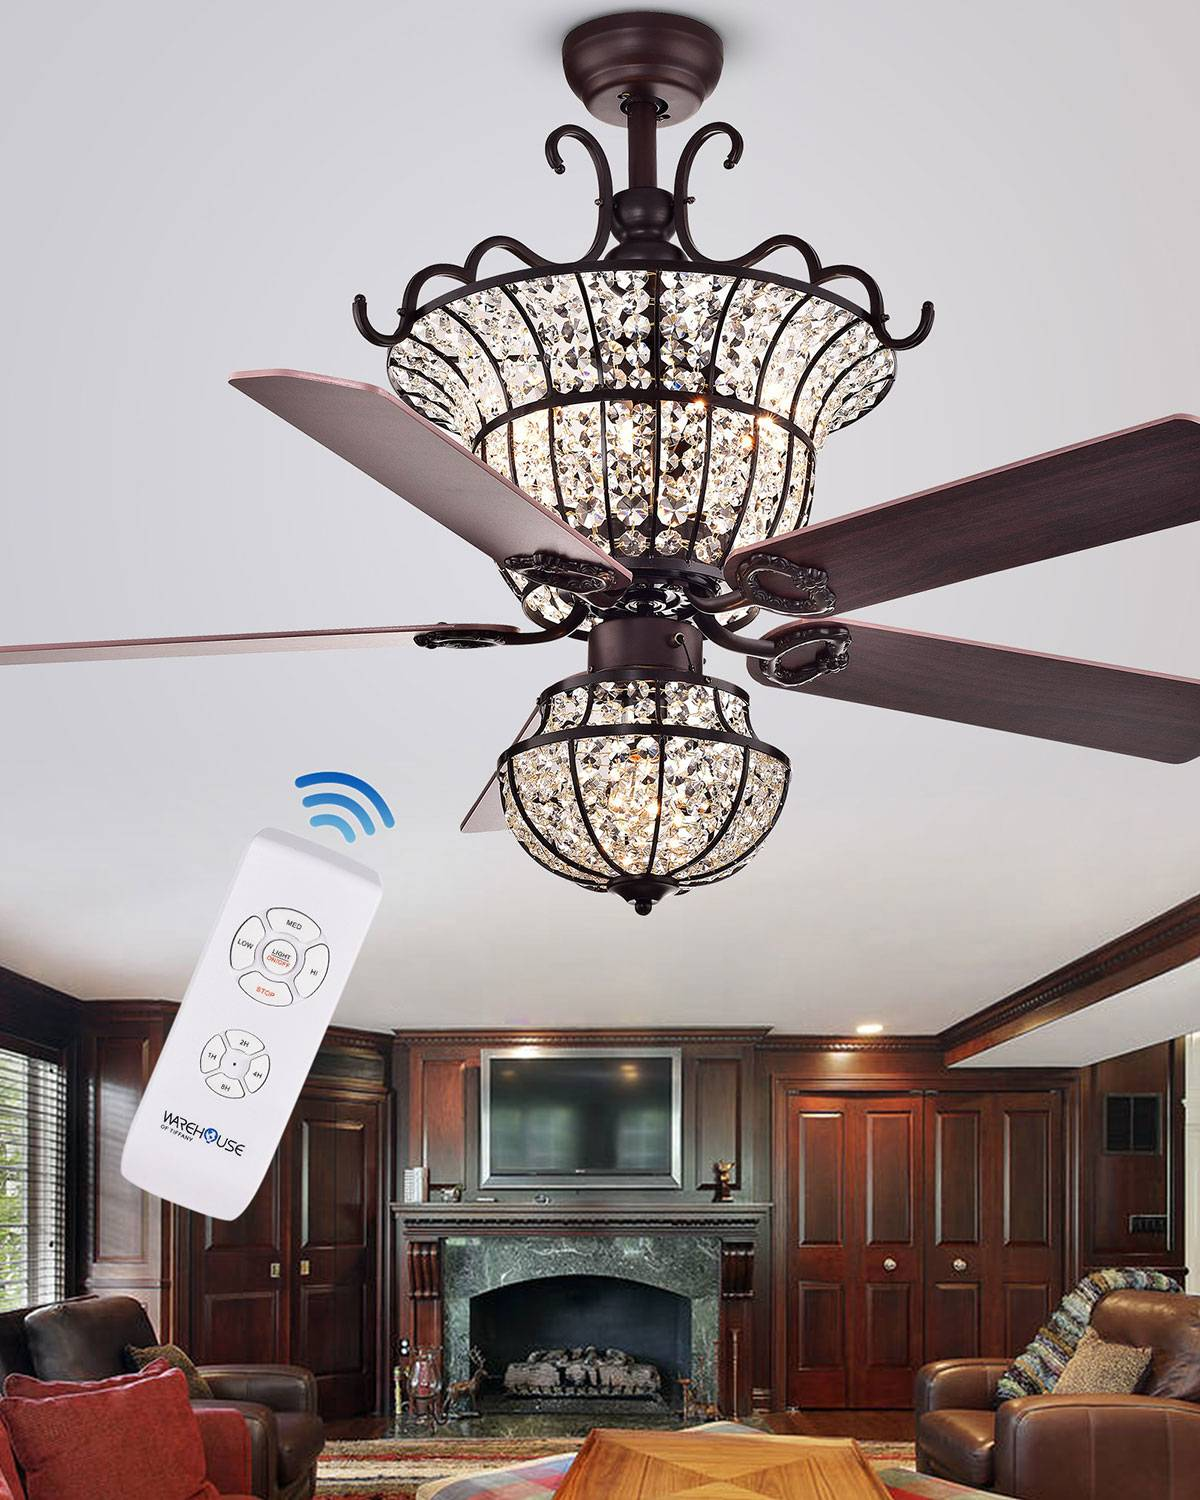 Home Accessories Bronzed Crystal Bowl Shade Chandelier Ceiling Fan